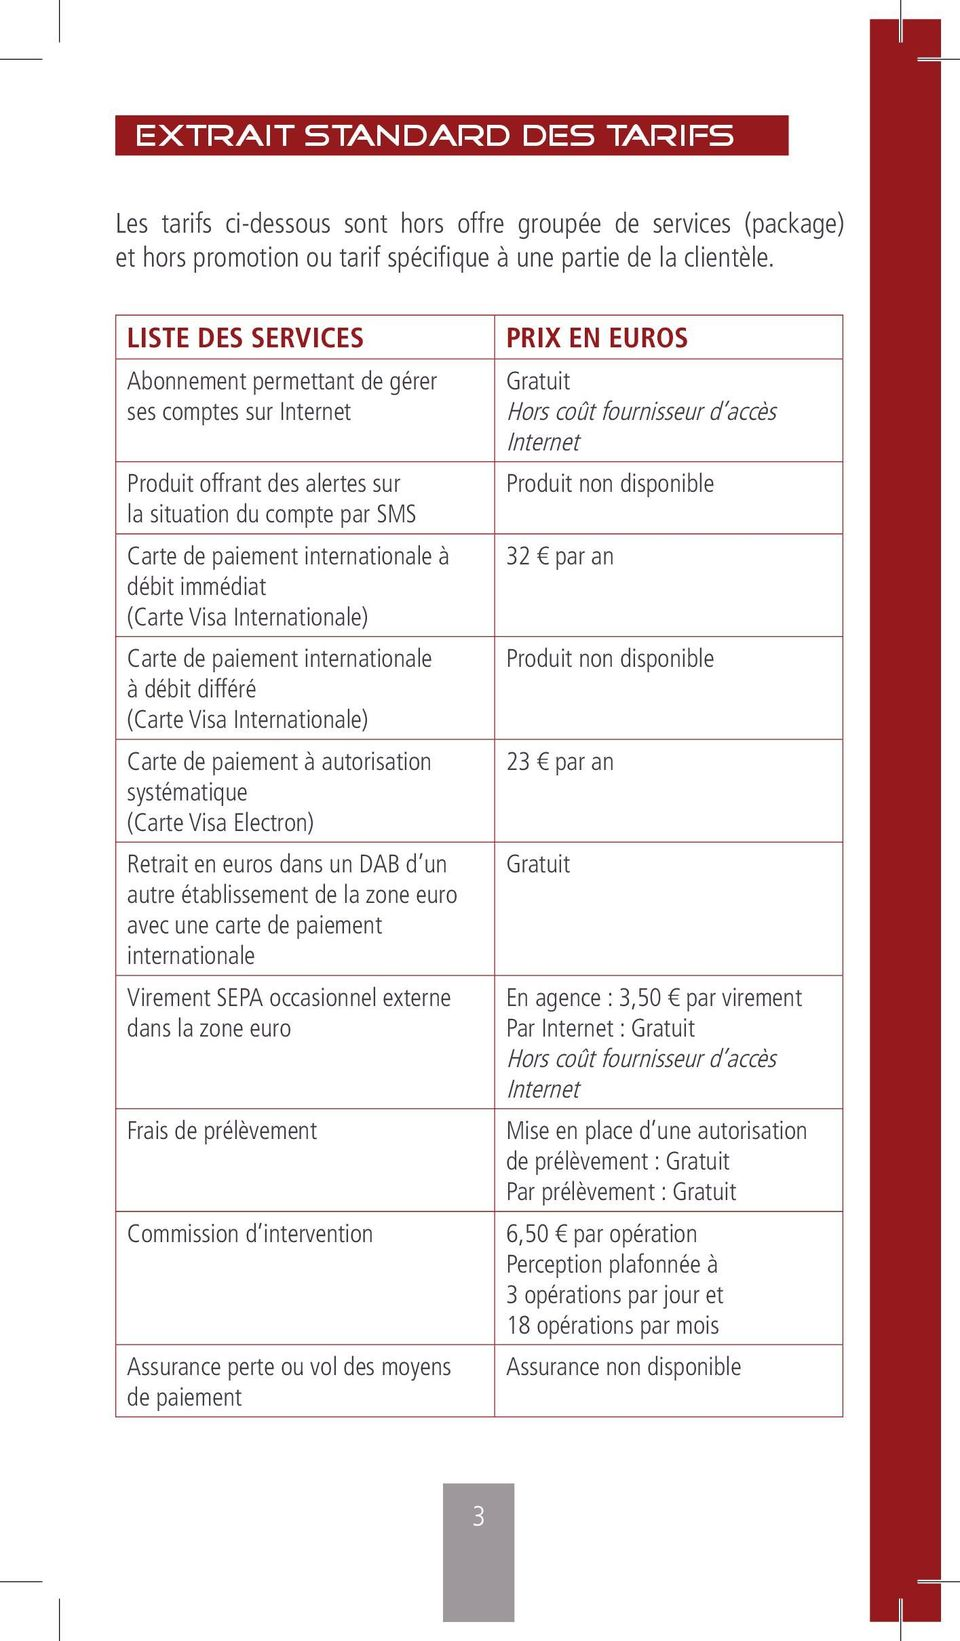 Internationale) Carte de paiement internationale à débit différé (Carte Visa Internationale) Carte de paiement à autorisation systématique (Carte Visa Electron) Retrait en euros dans un DAB d un